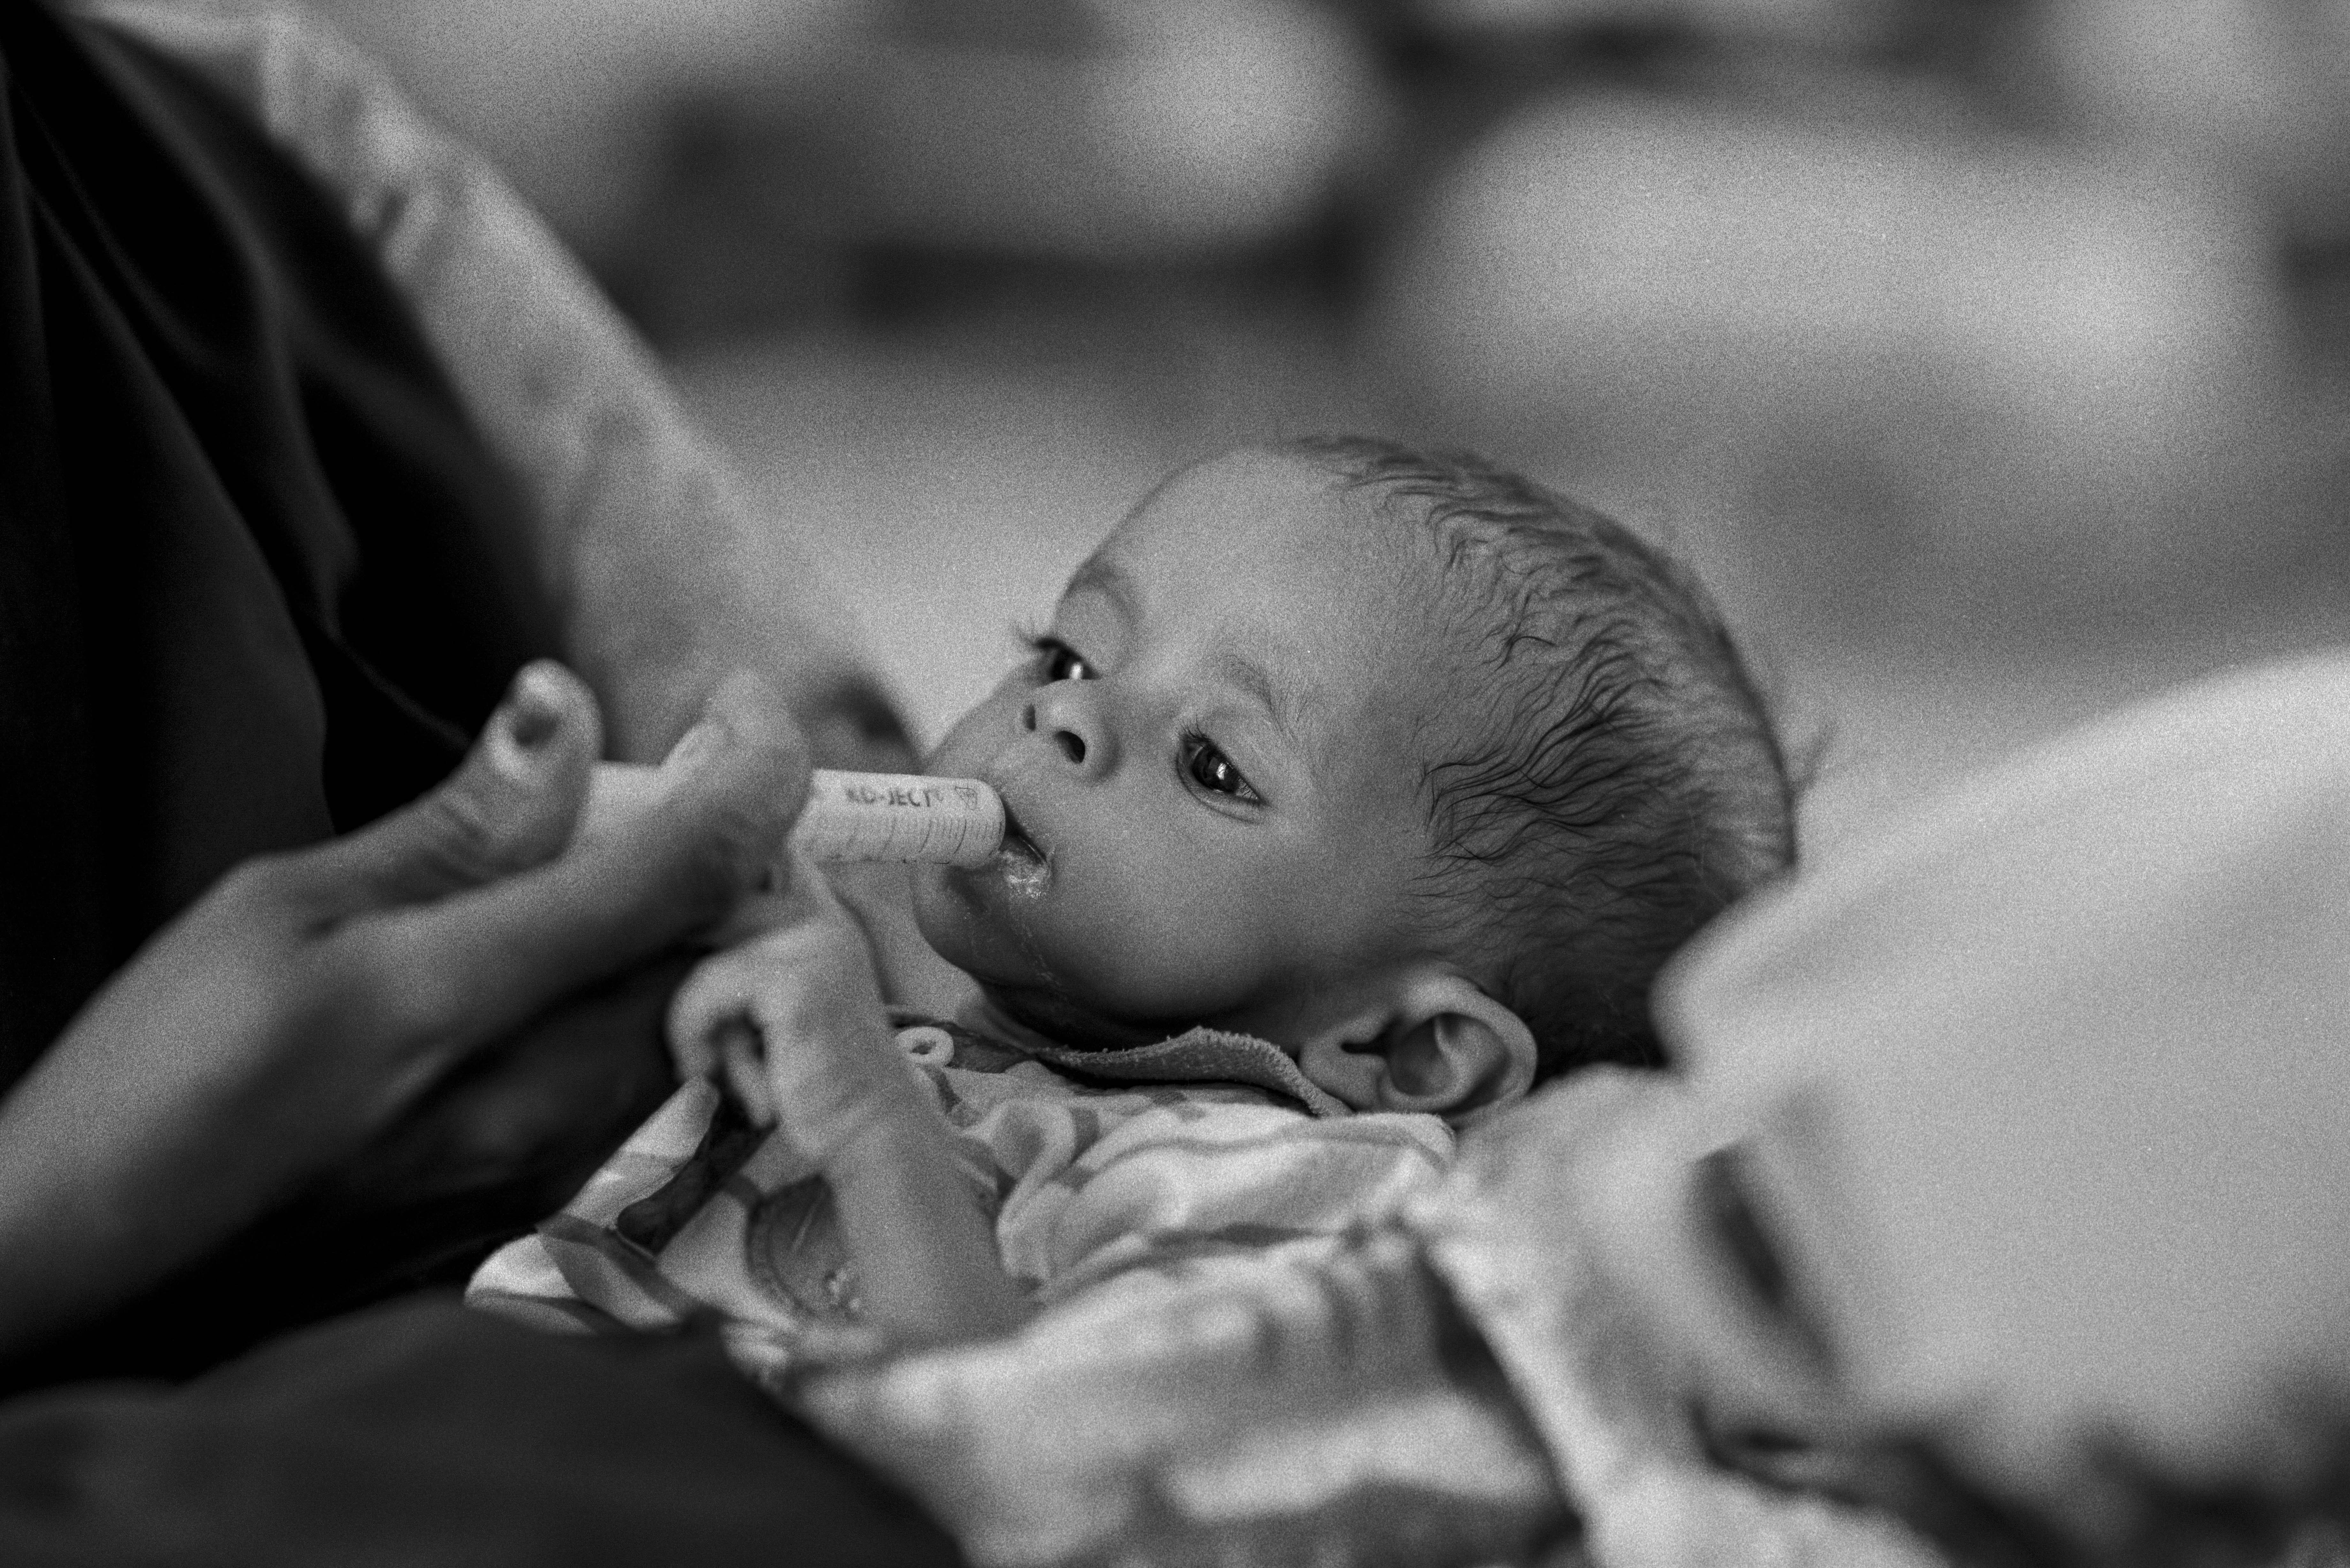 A malnourished child is fed with a syringe. Photo by Sebastian Rich for UNICEF